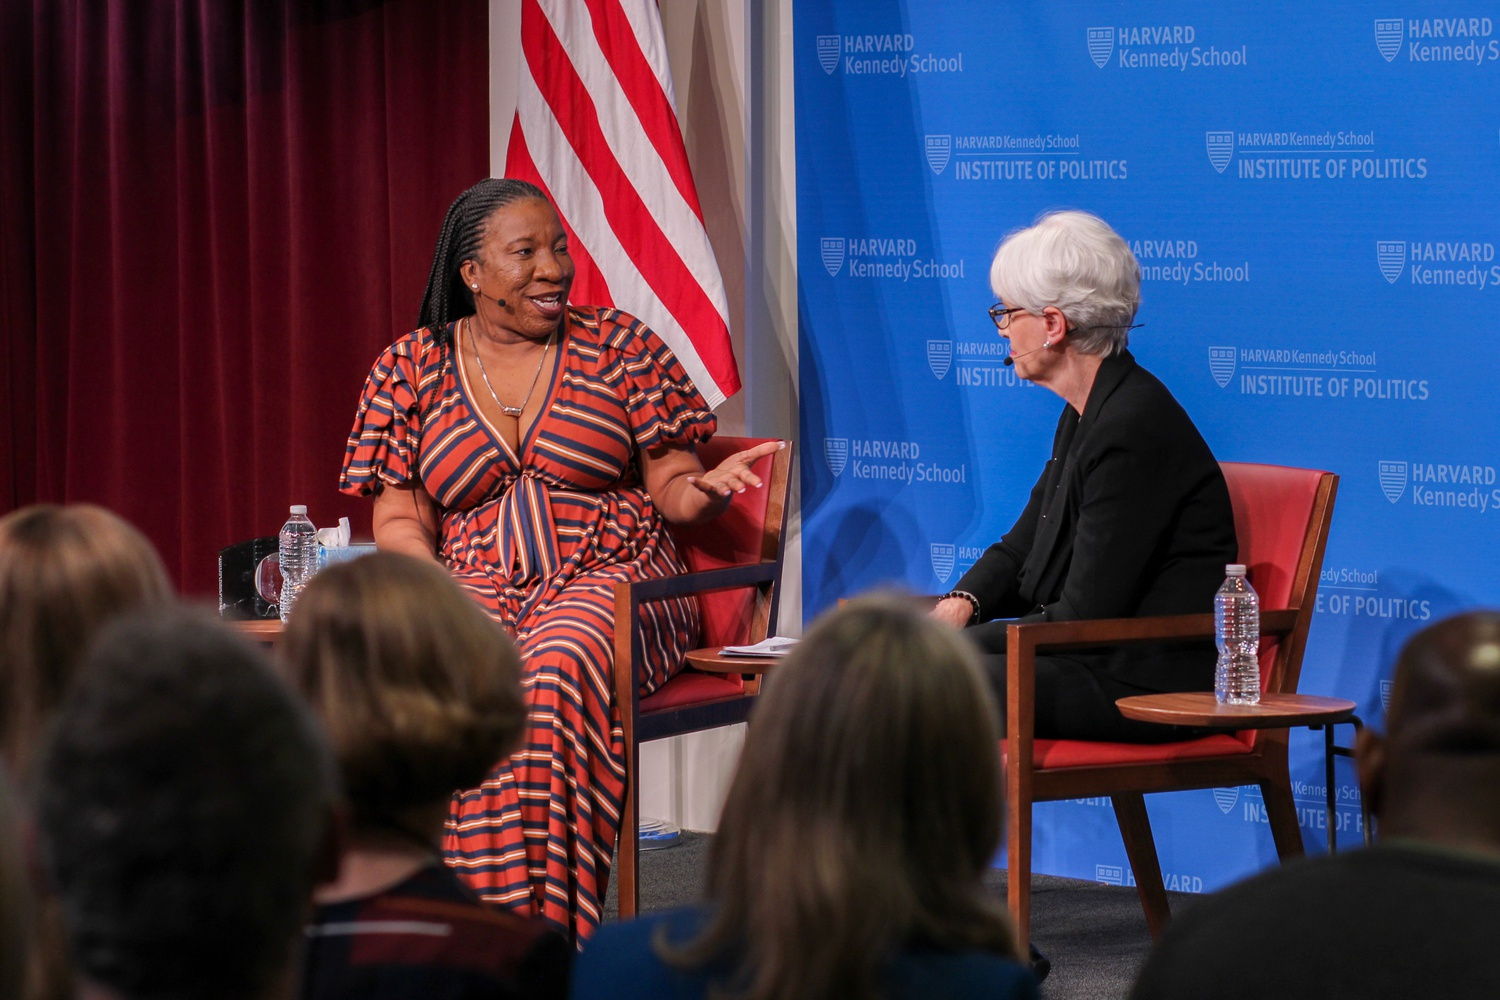 Tarana Burke, founder of the #MeToo movement, spoke Wednesday at the Institute of Politics.